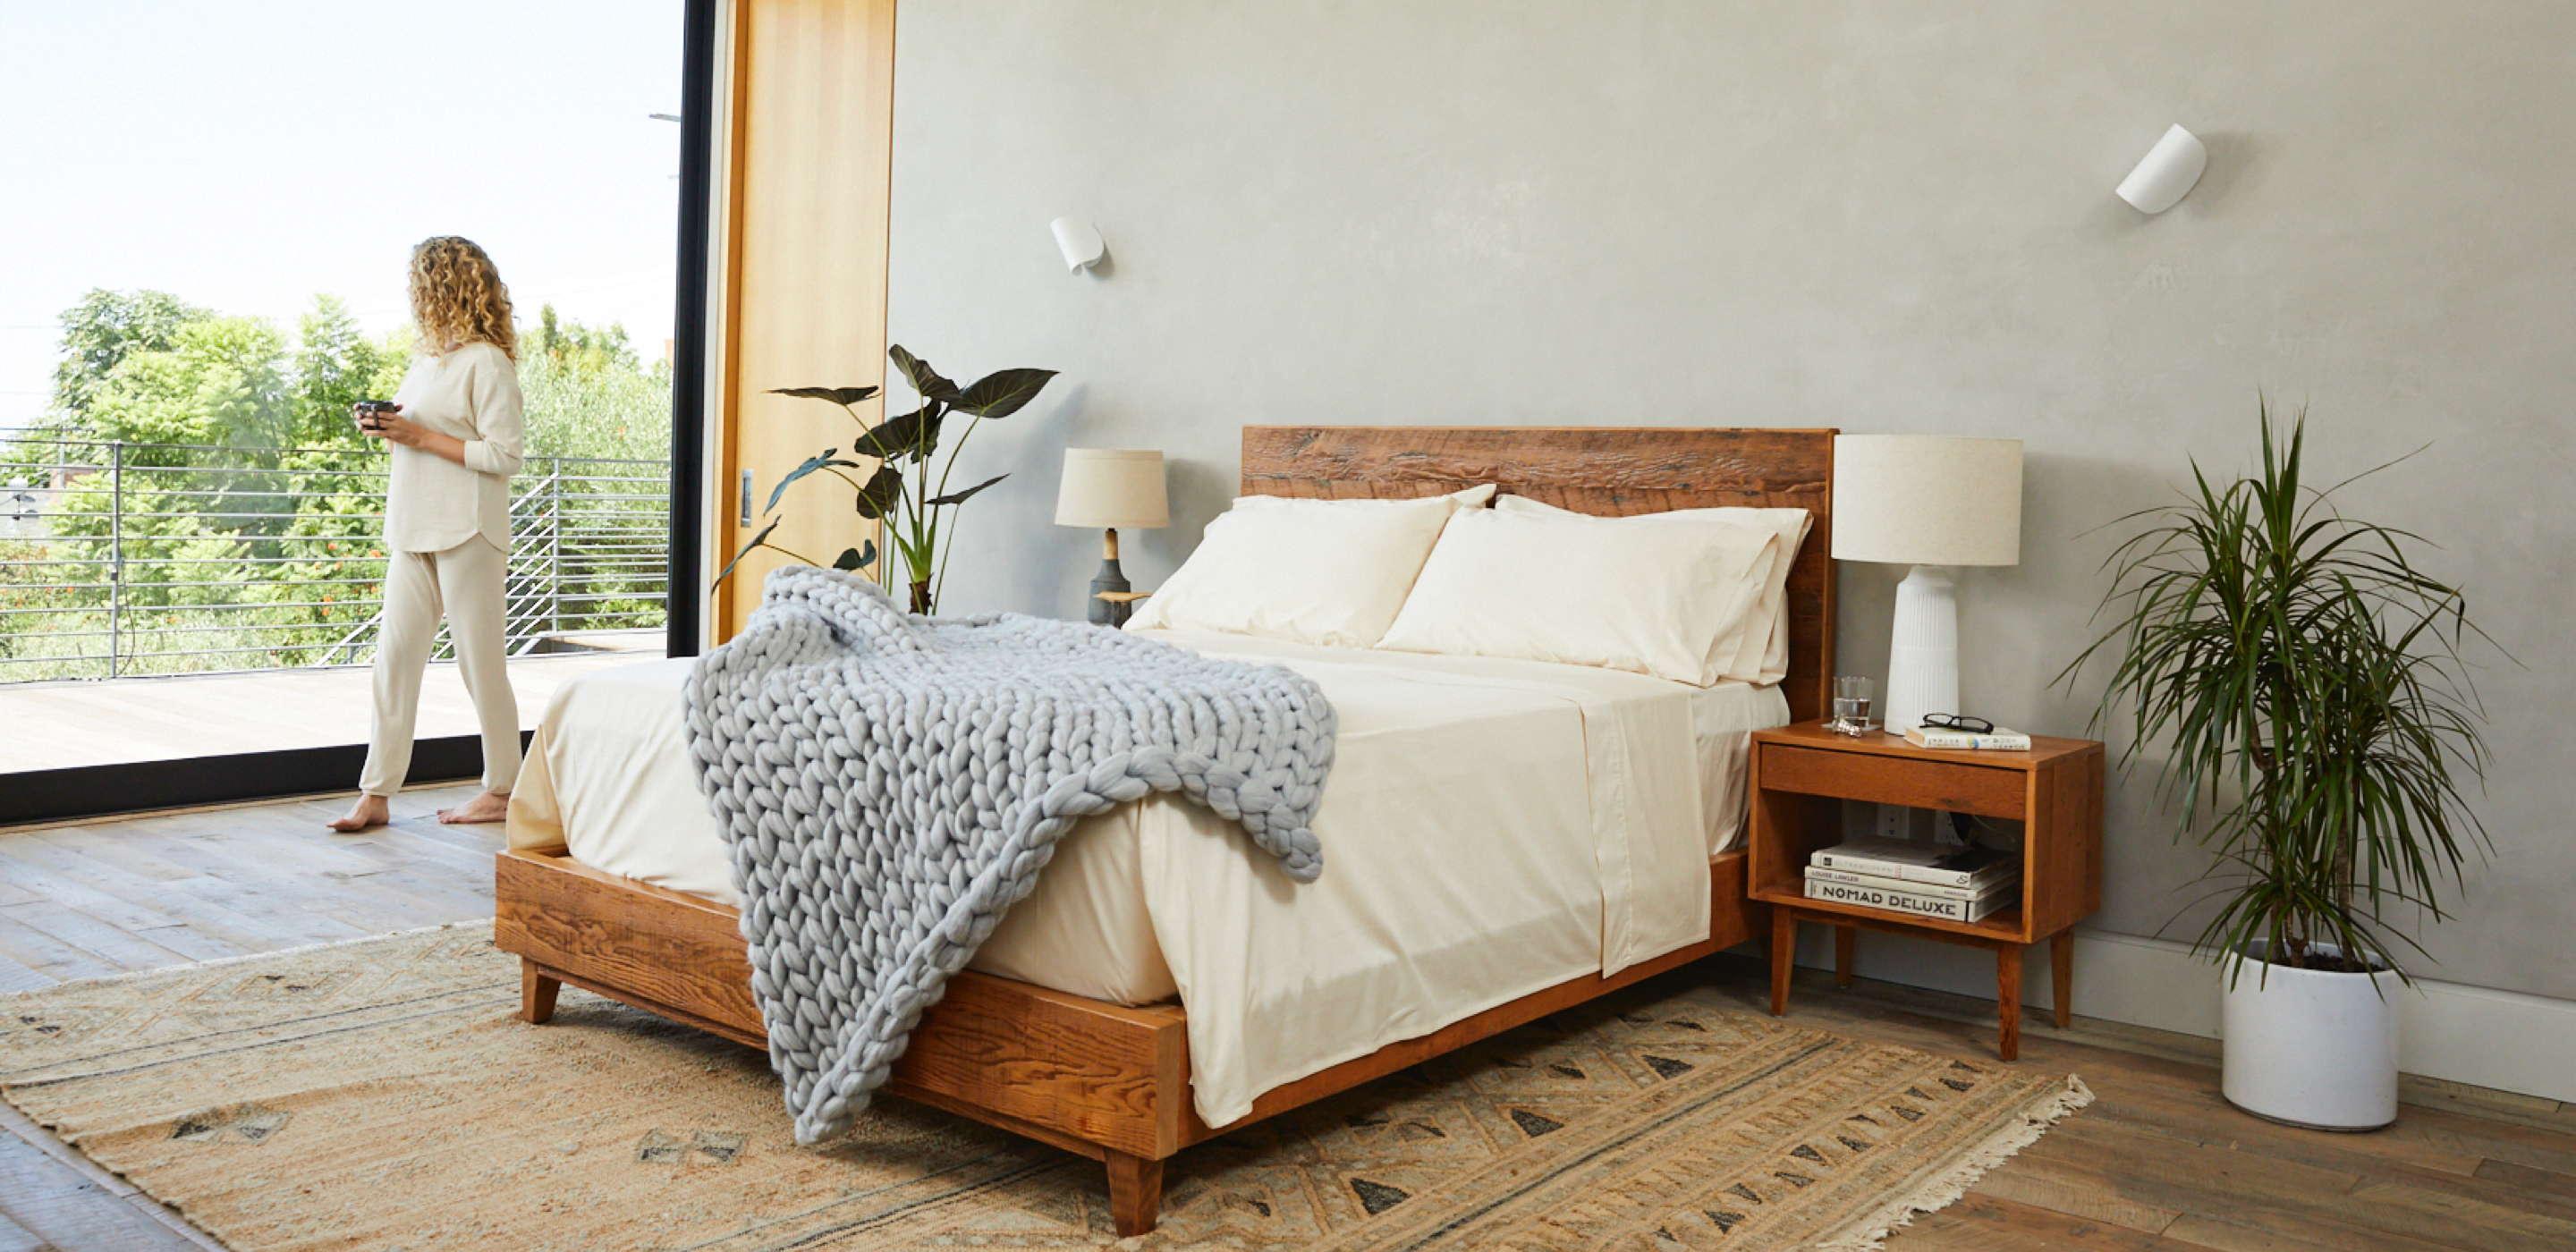 what is the best mattress for side sleepers?